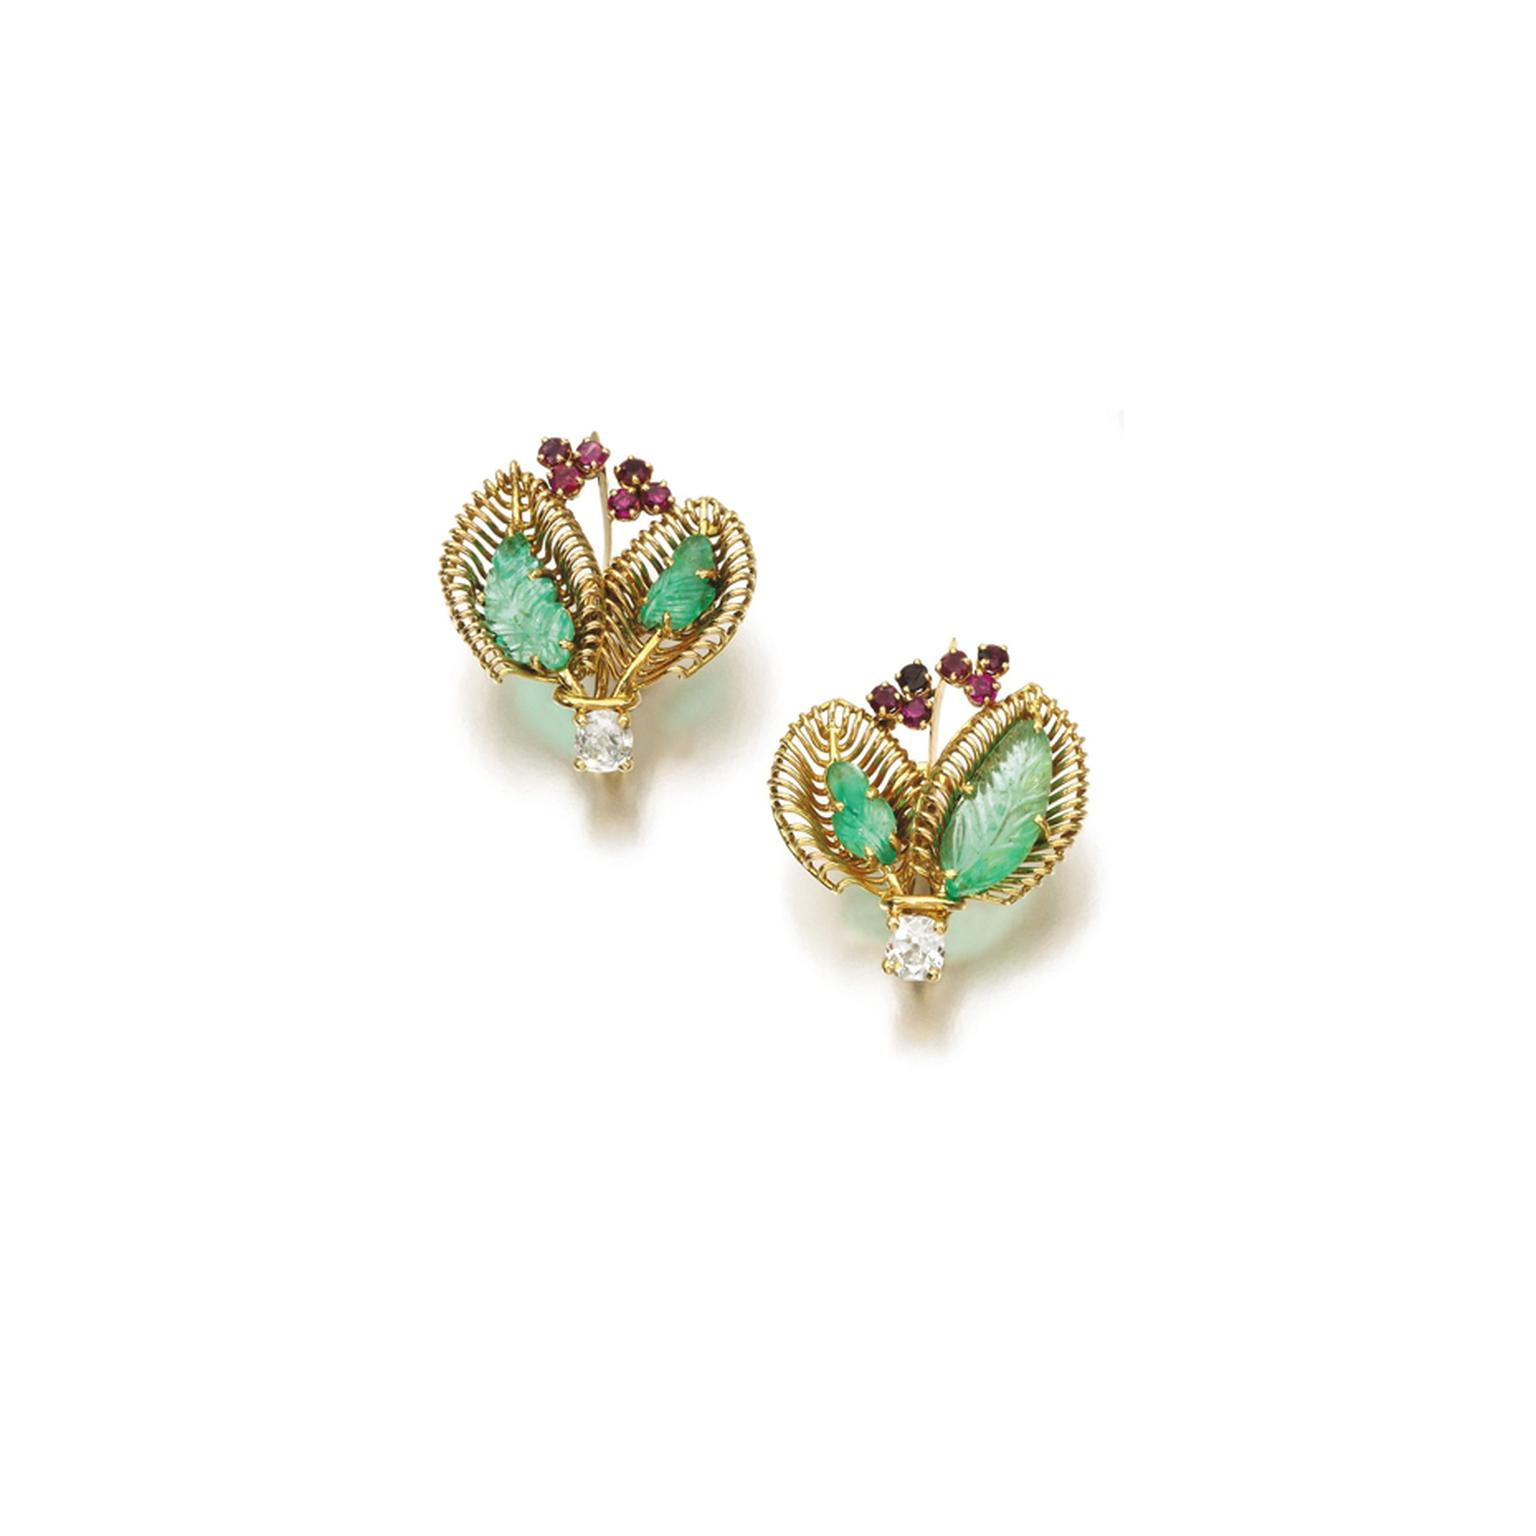 Lot 103, from the Daisy Fellowes collection, a pair of 1950s ruby, emerald and diamond earrings featuring a stylised bouquet design, each set with two foliate carved emeralds, circular-cut rubies and diamonds (estimate: £3,000-5,000; unsold)